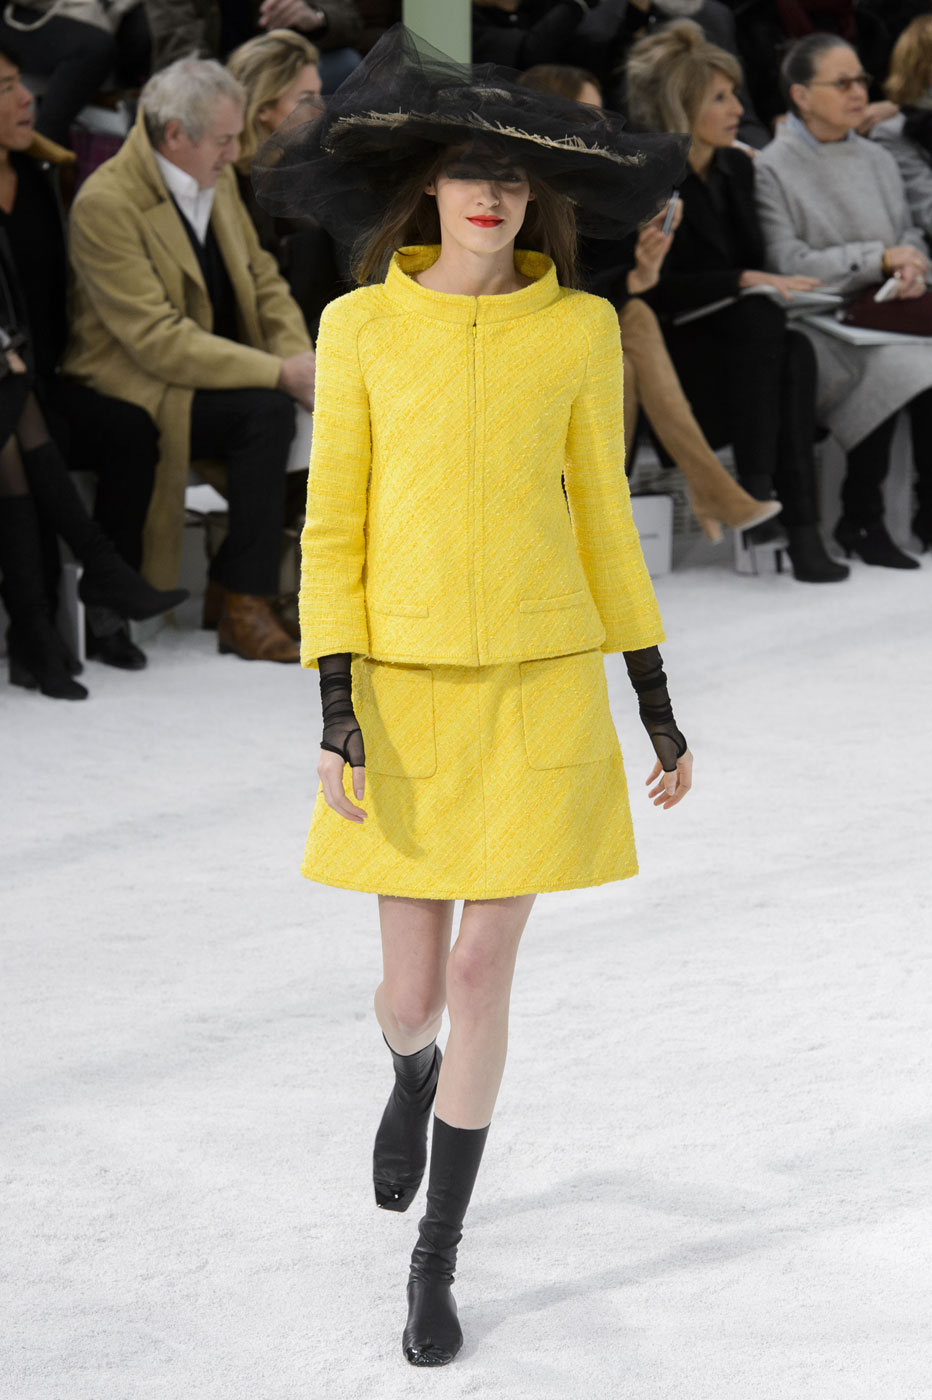 Chanel-fashion-runway-show-haute-couture-paris-spring-summer-2015-the-impression-013